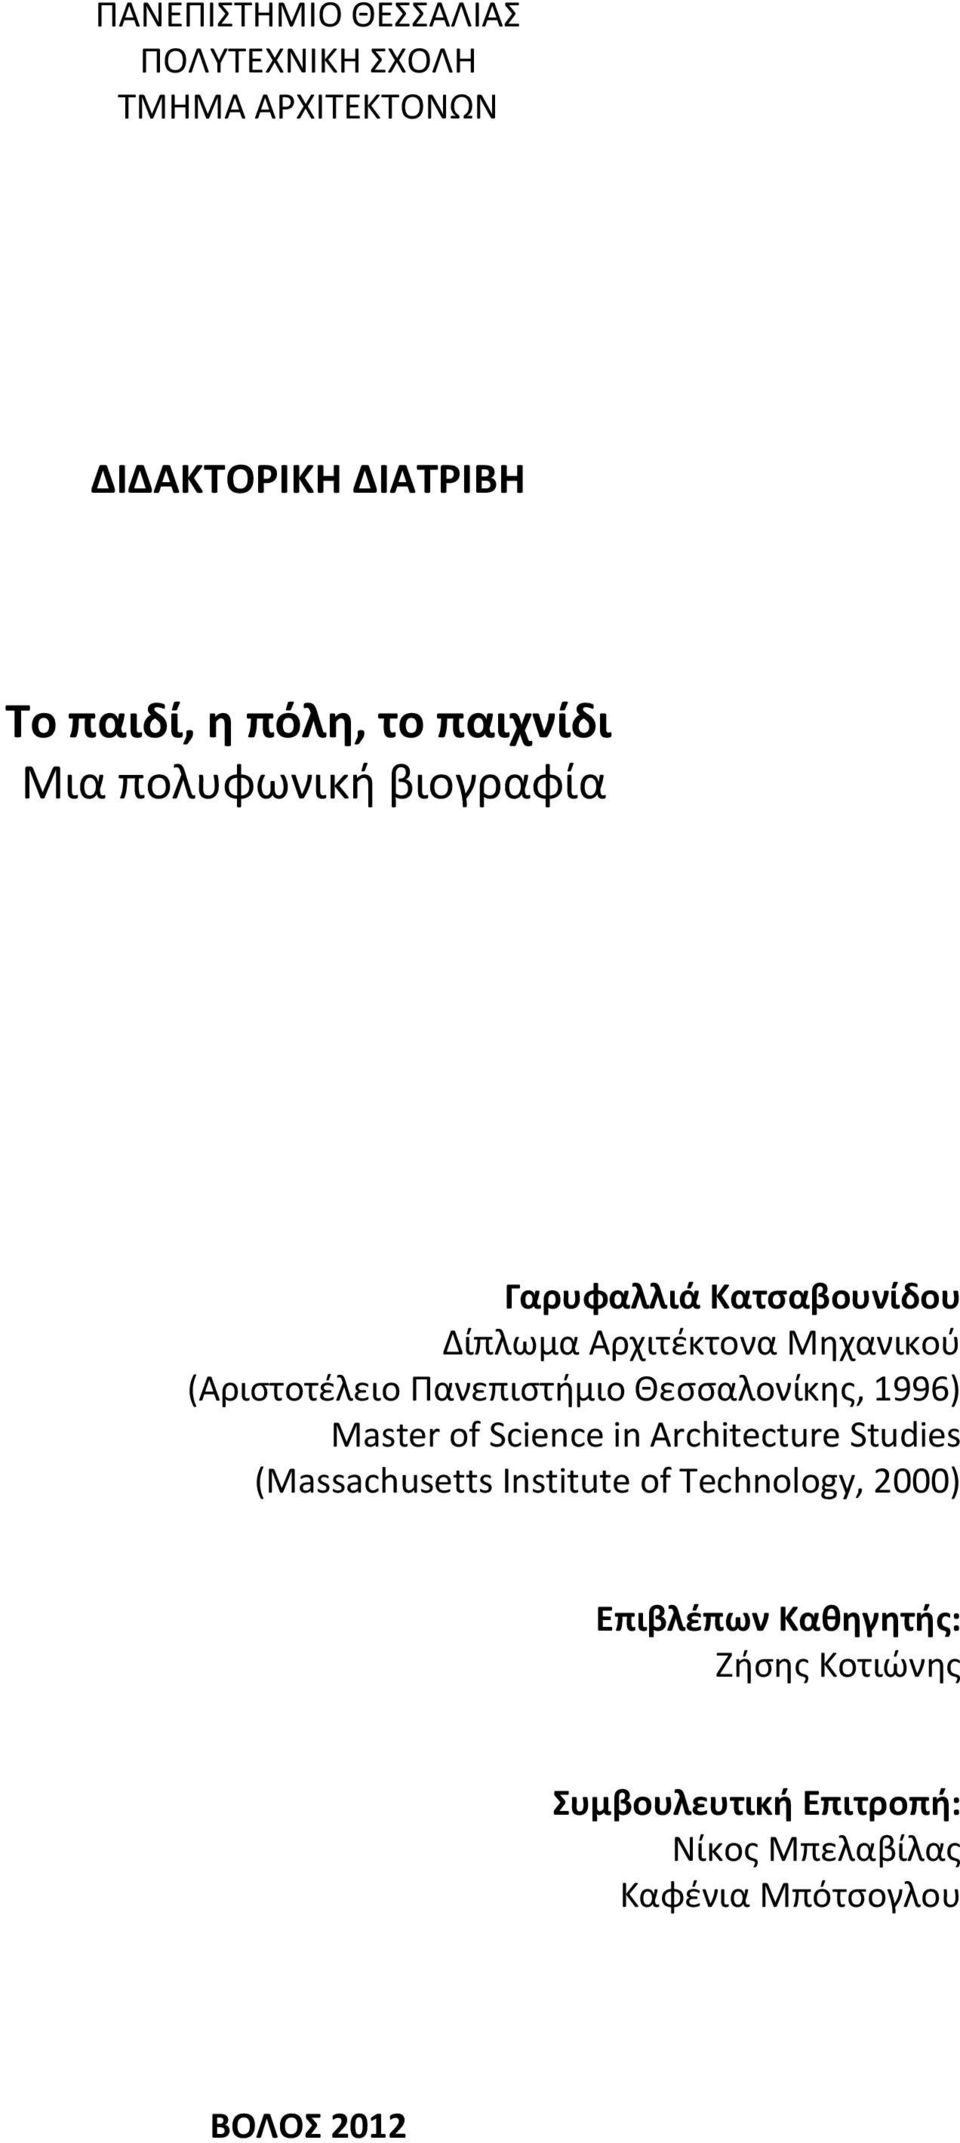 Πανεπιστήμιο Θεσσαλονίκης, 1996) Master of Science in Architecture Studies (Massachusetts Institute of